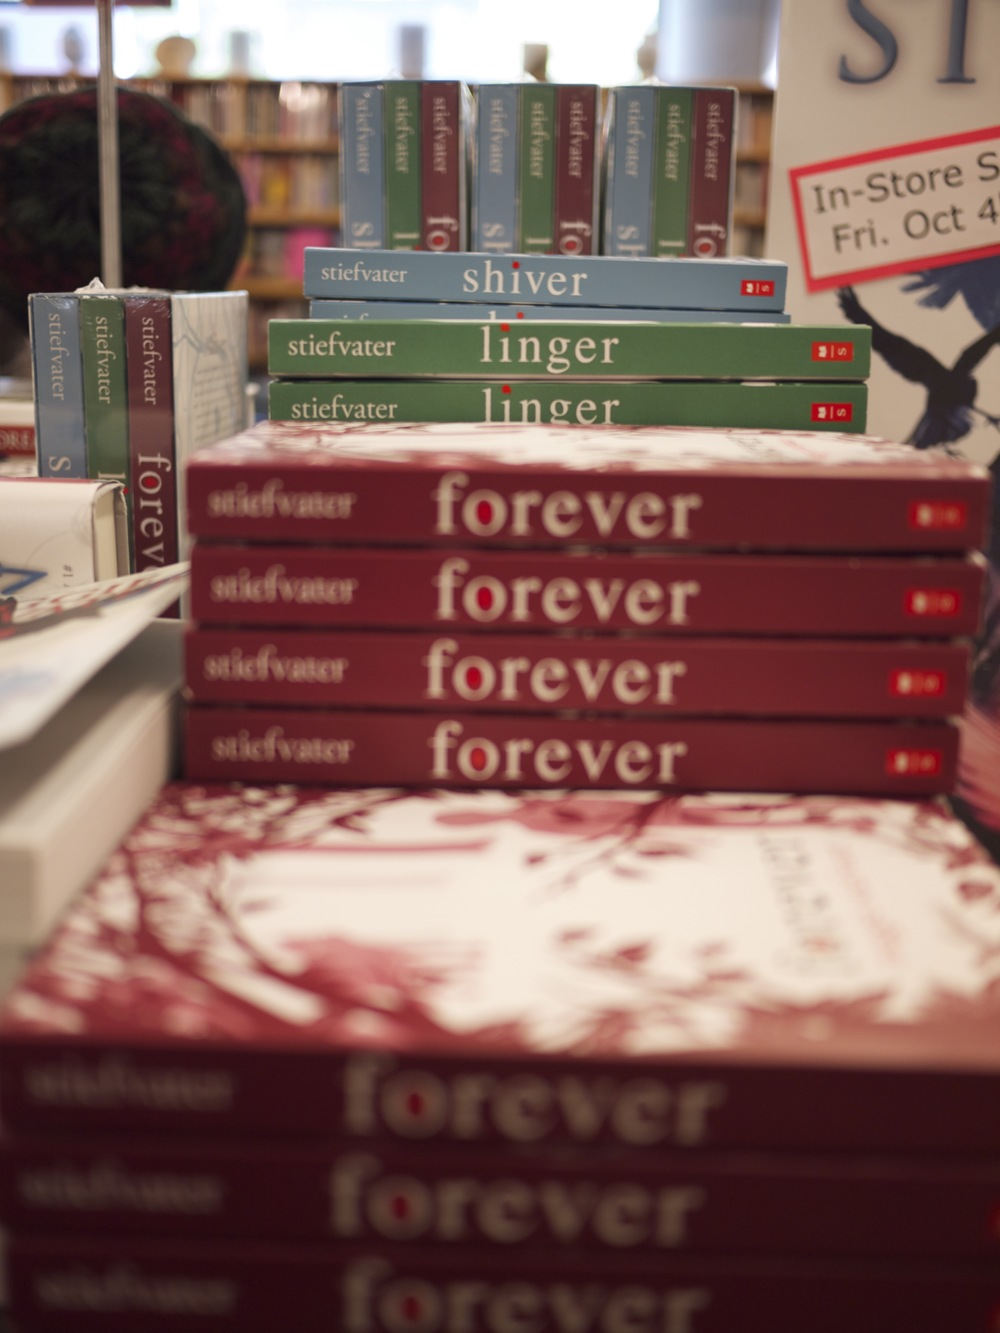 Shiver/Linger/Forever at University Bookstore